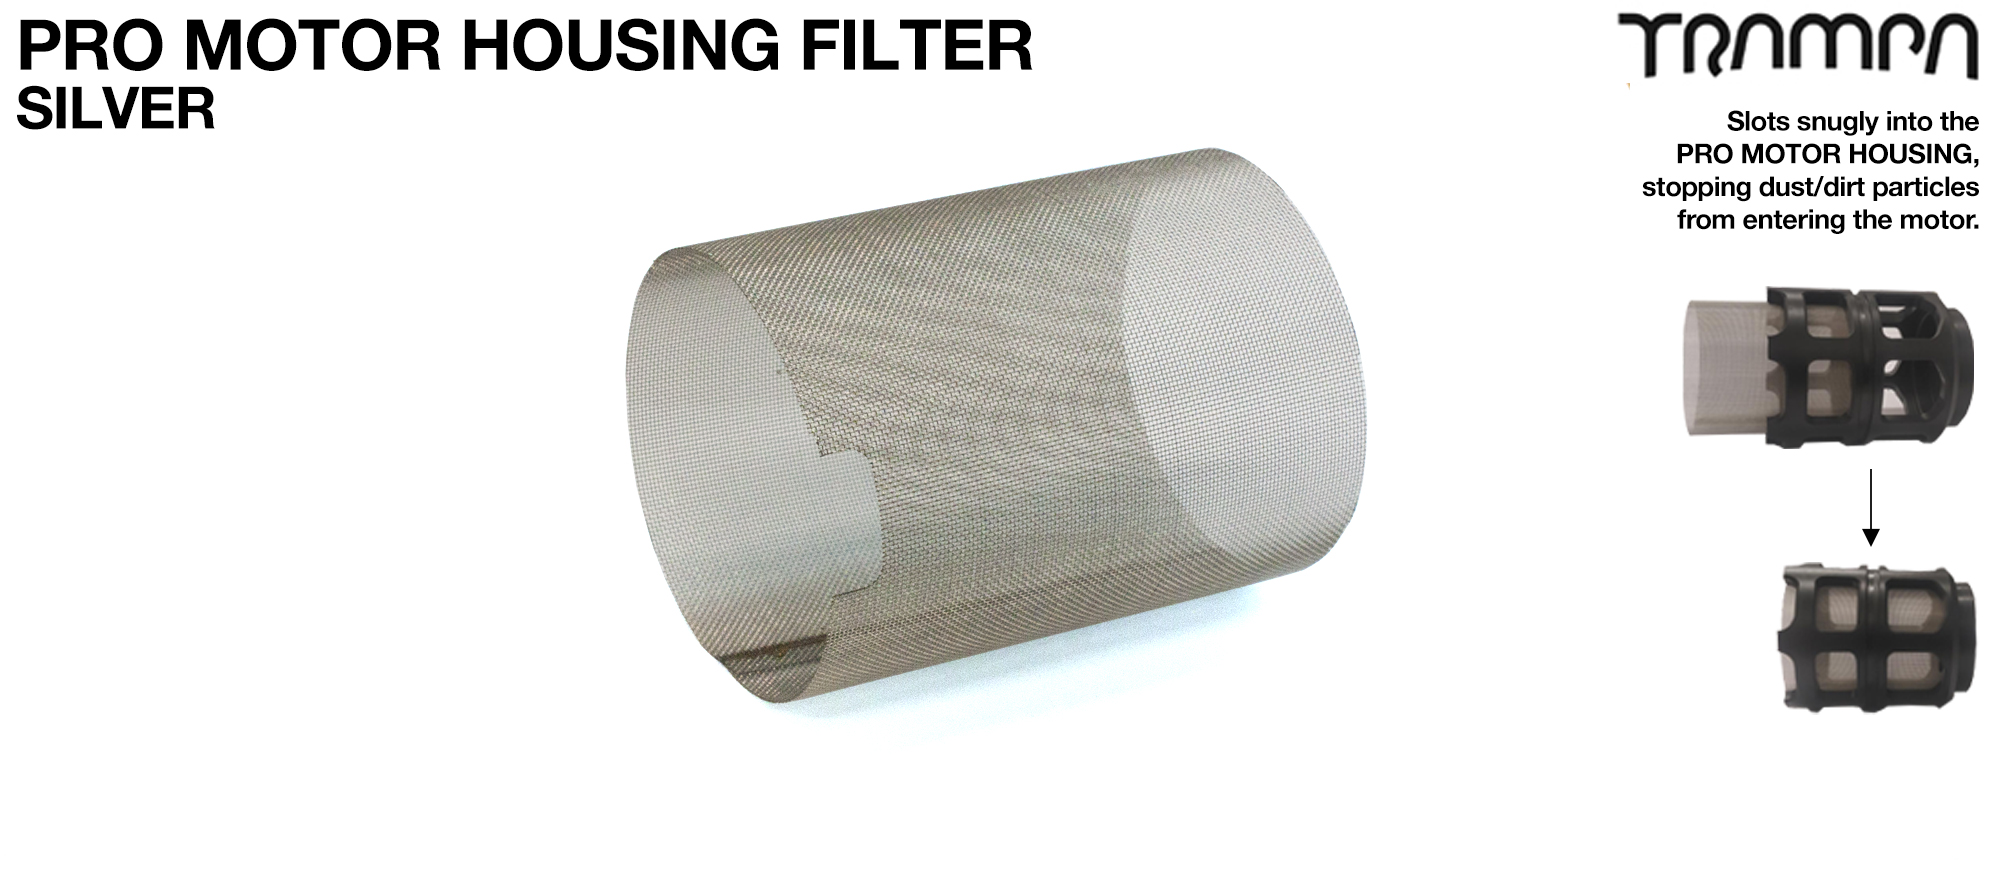 Motor protection - Plastic cover MESH